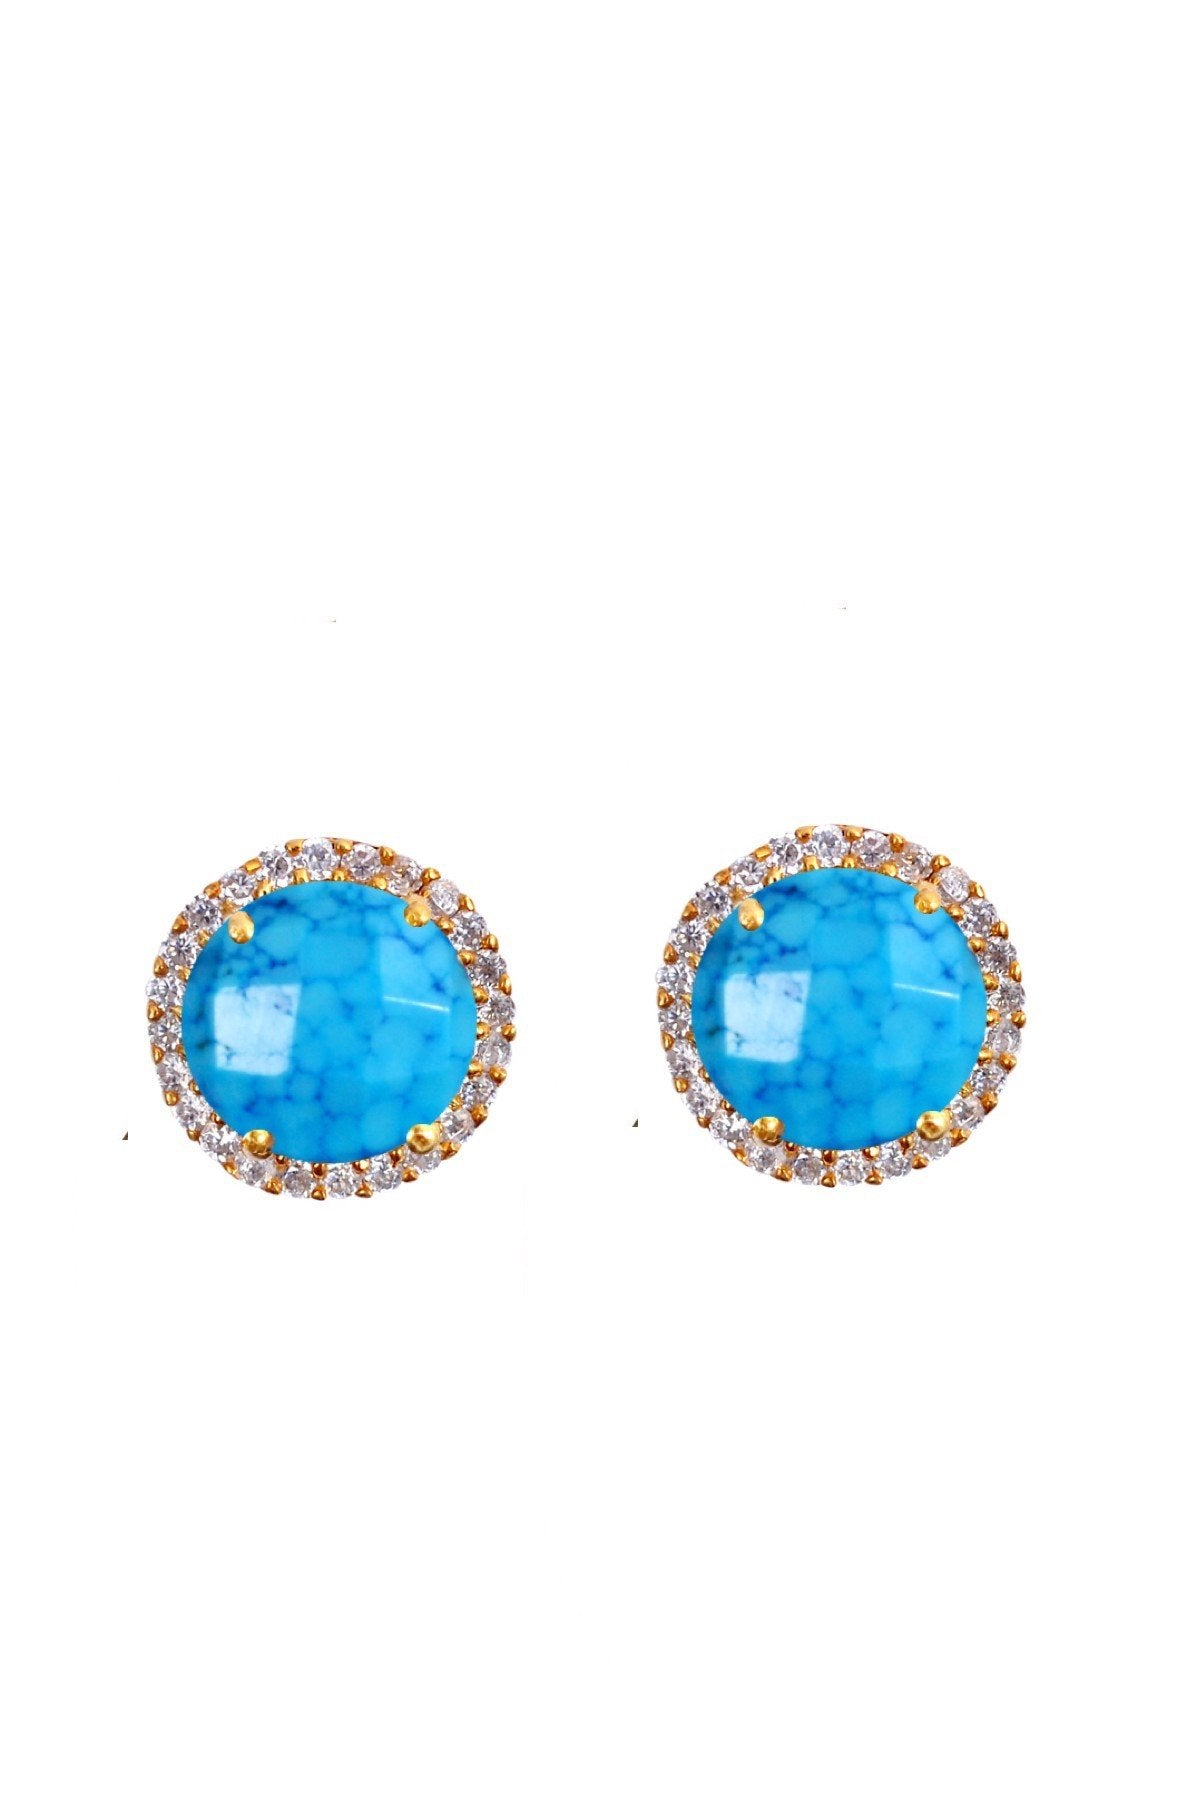 18K Gold Turquoise & Cz Stud Earrings